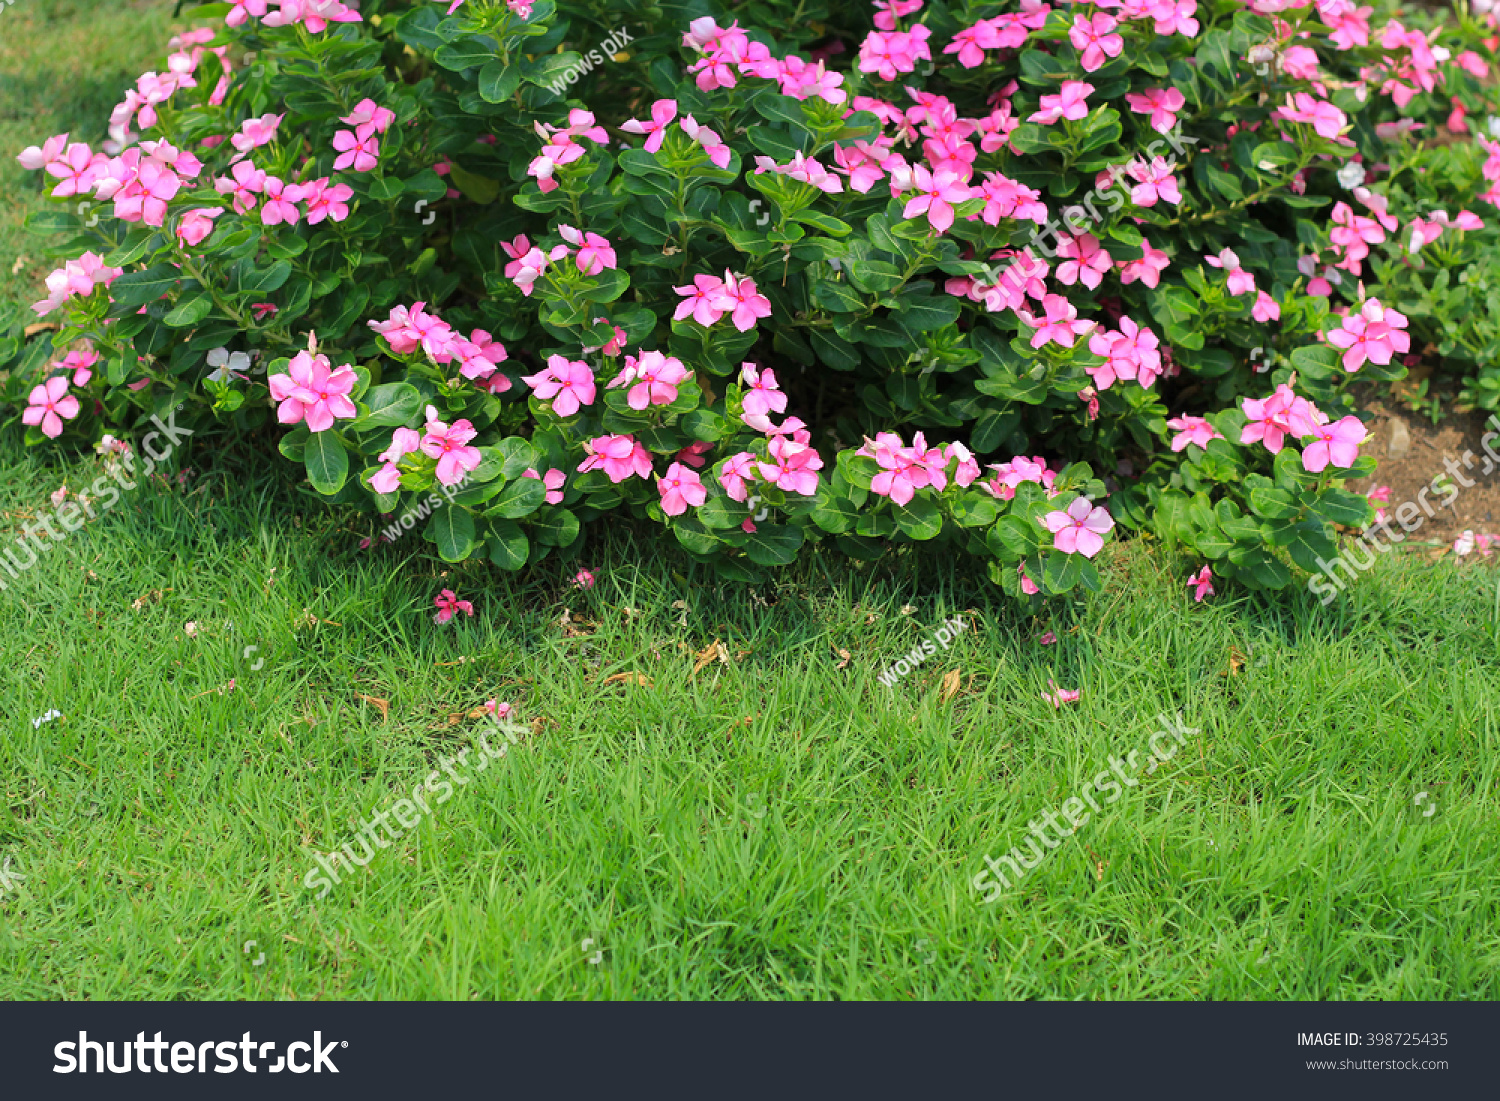 White Pink Flowers Green Grass Background Stock Photo Edit Now